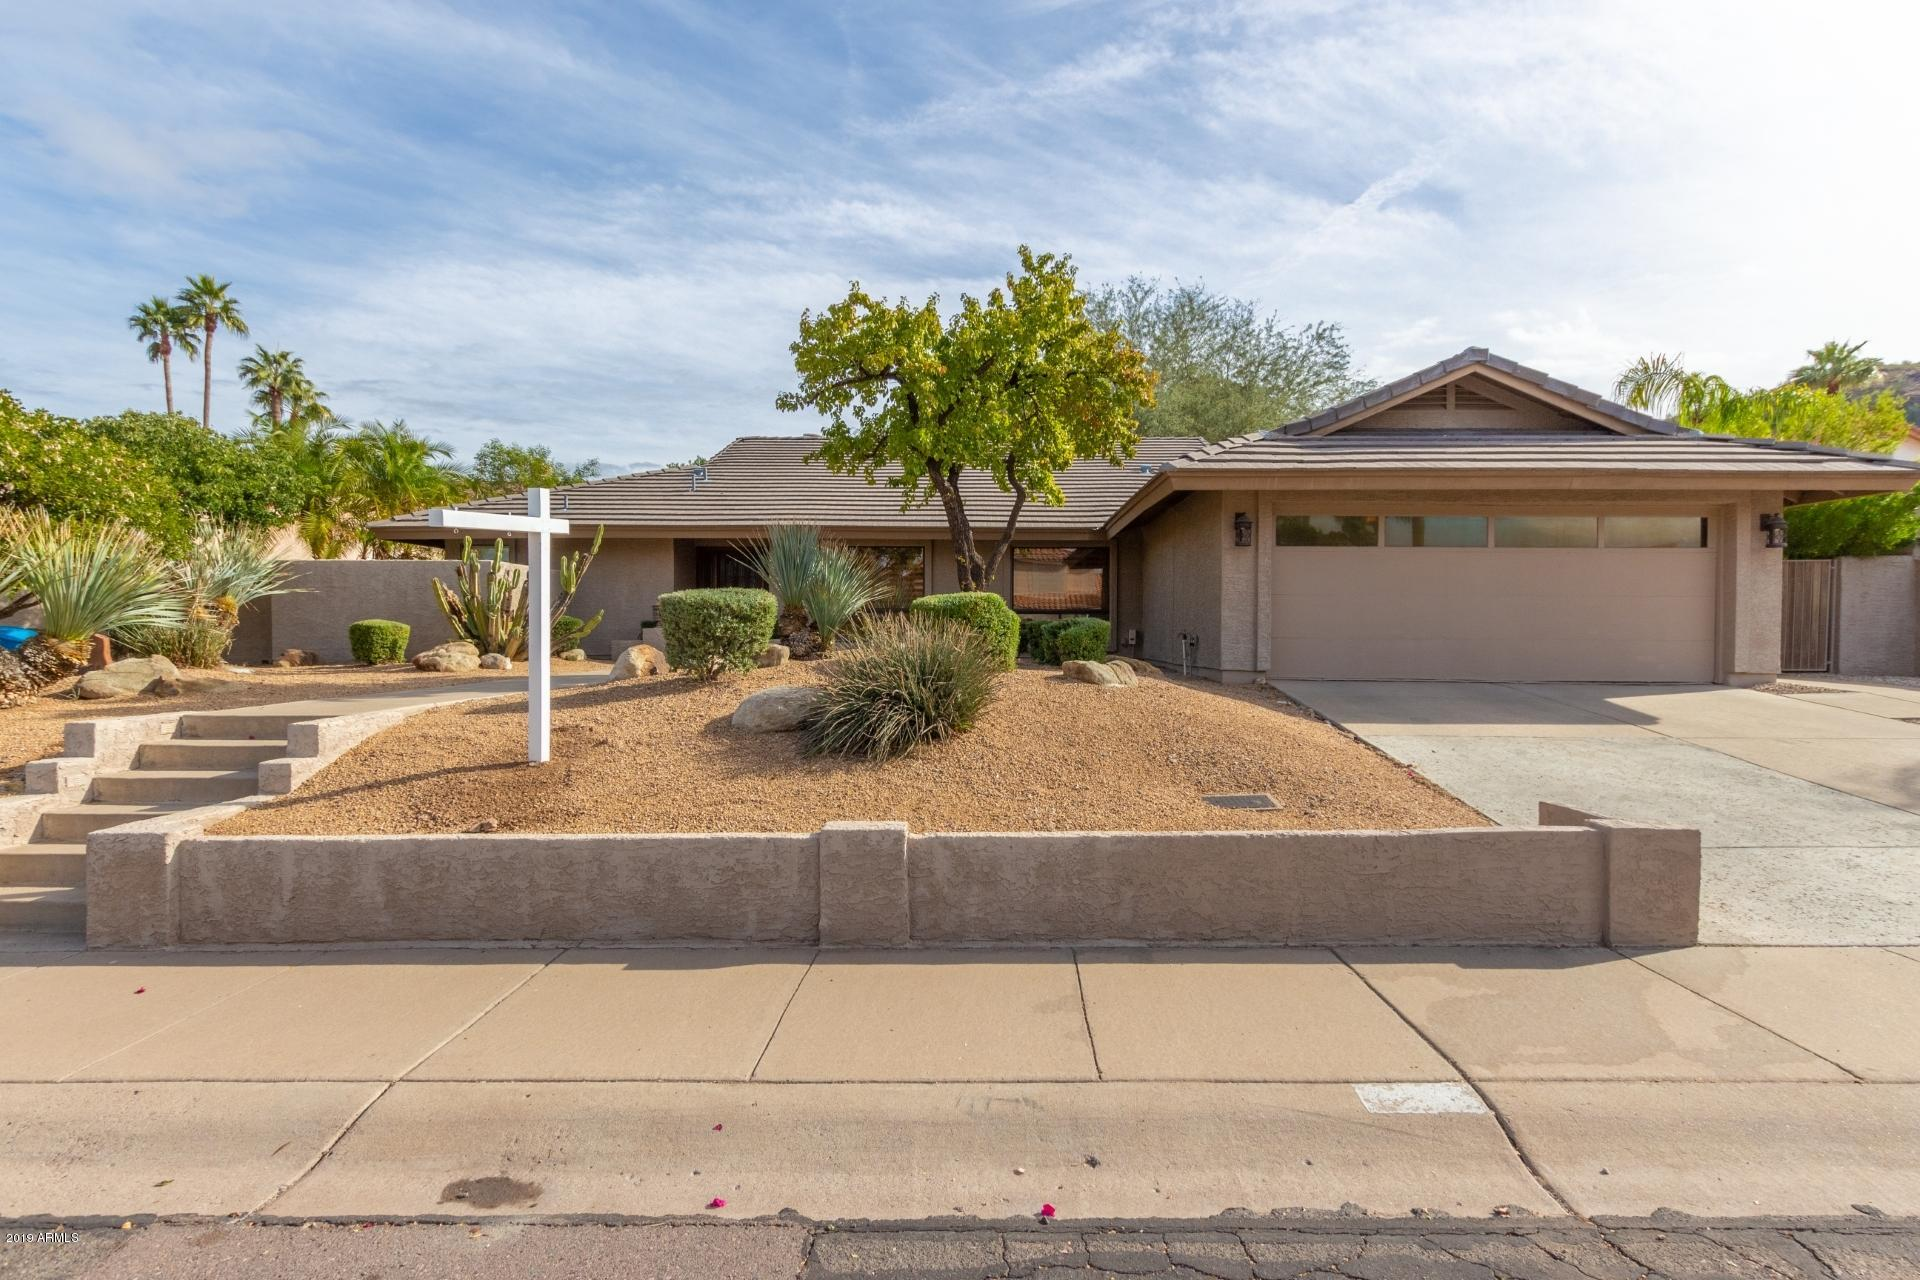 Photo of 15801 N 11TH Street, Phoenix, AZ 85022